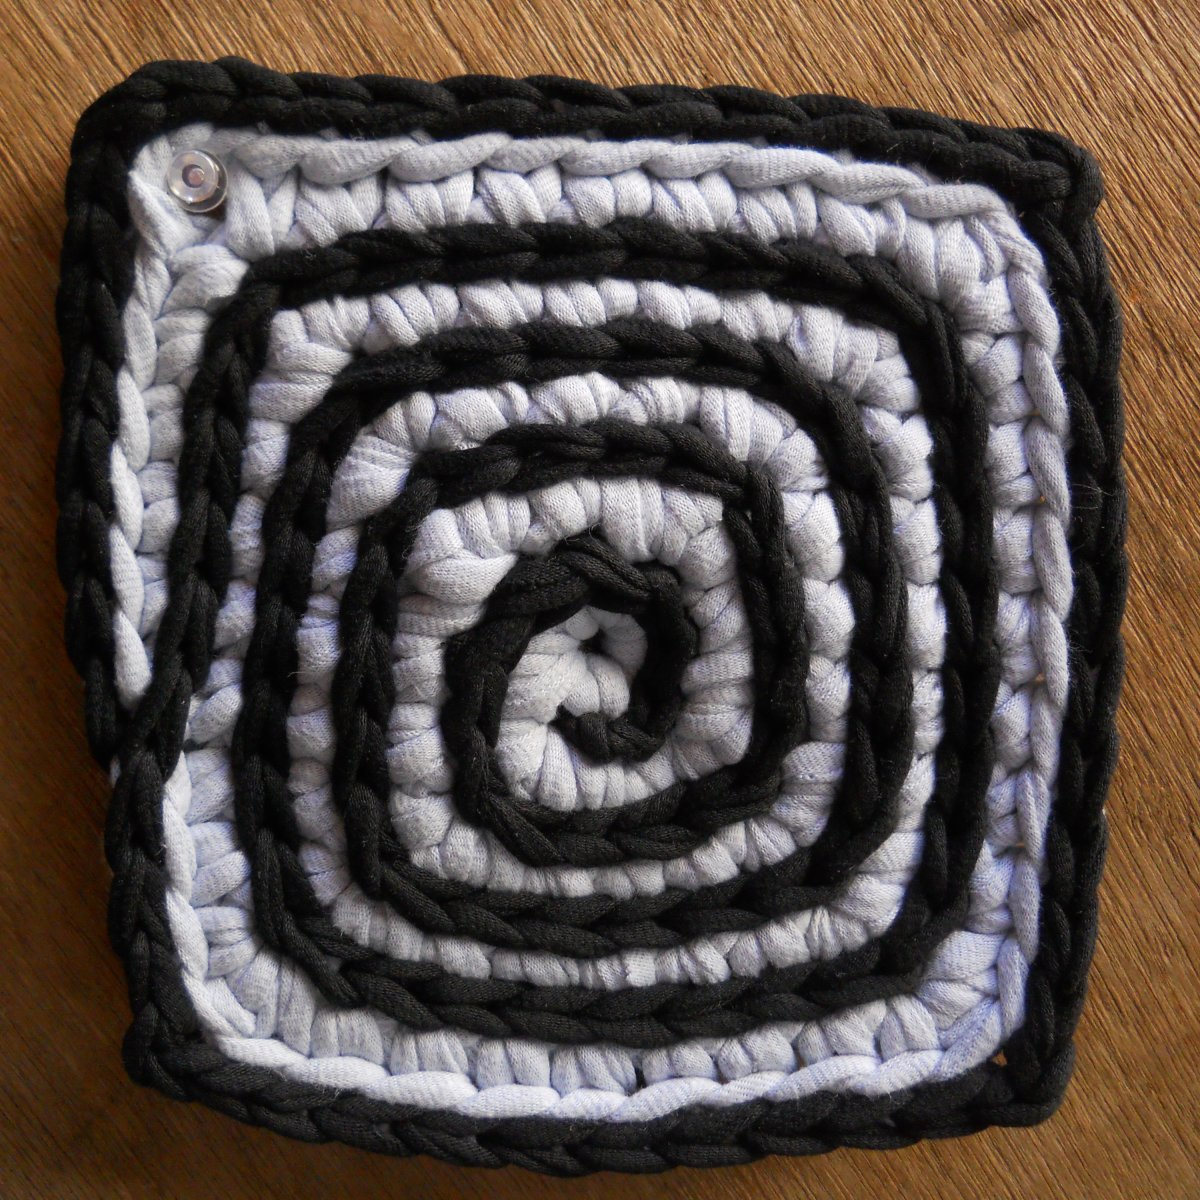 Hot Hot Hot Pad #2 - I slip-stitched the spiral.